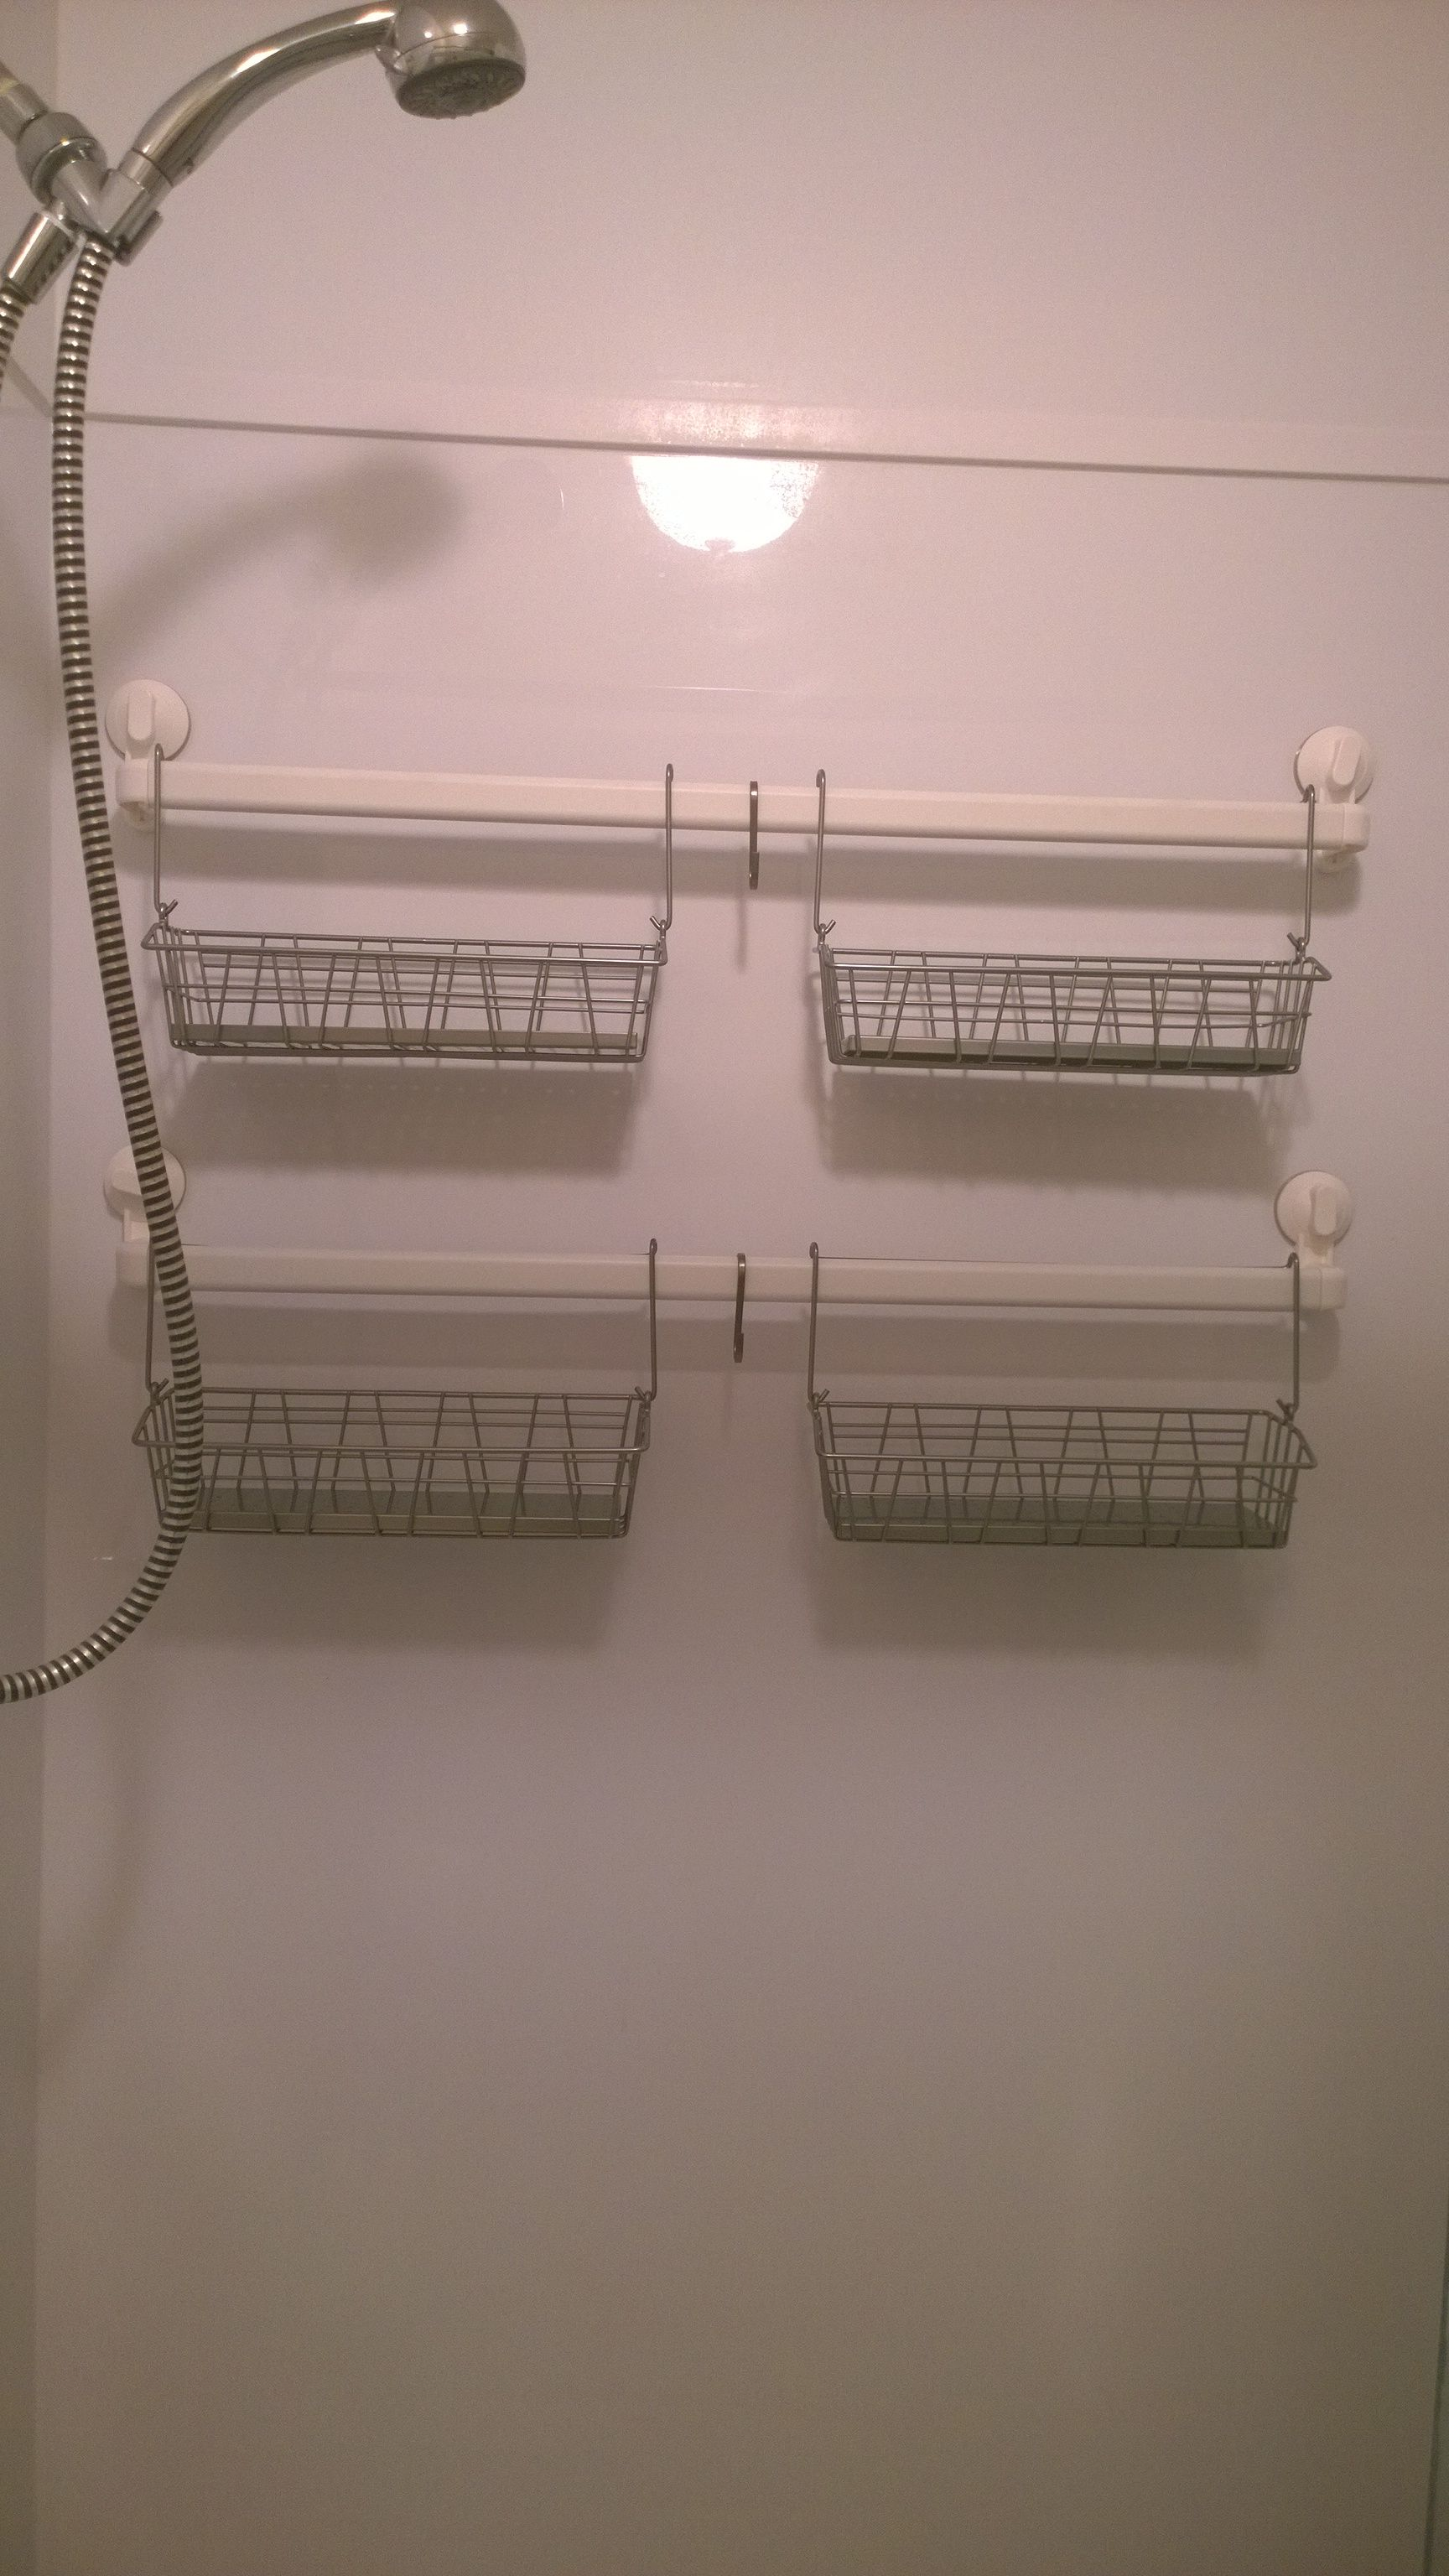 My New Ikea Hacked Shower Caddy Made From Stugvik Suction Cup Towel Racks Bygel Hanging Baskets And Grundtal Hooks All Items Other Than The